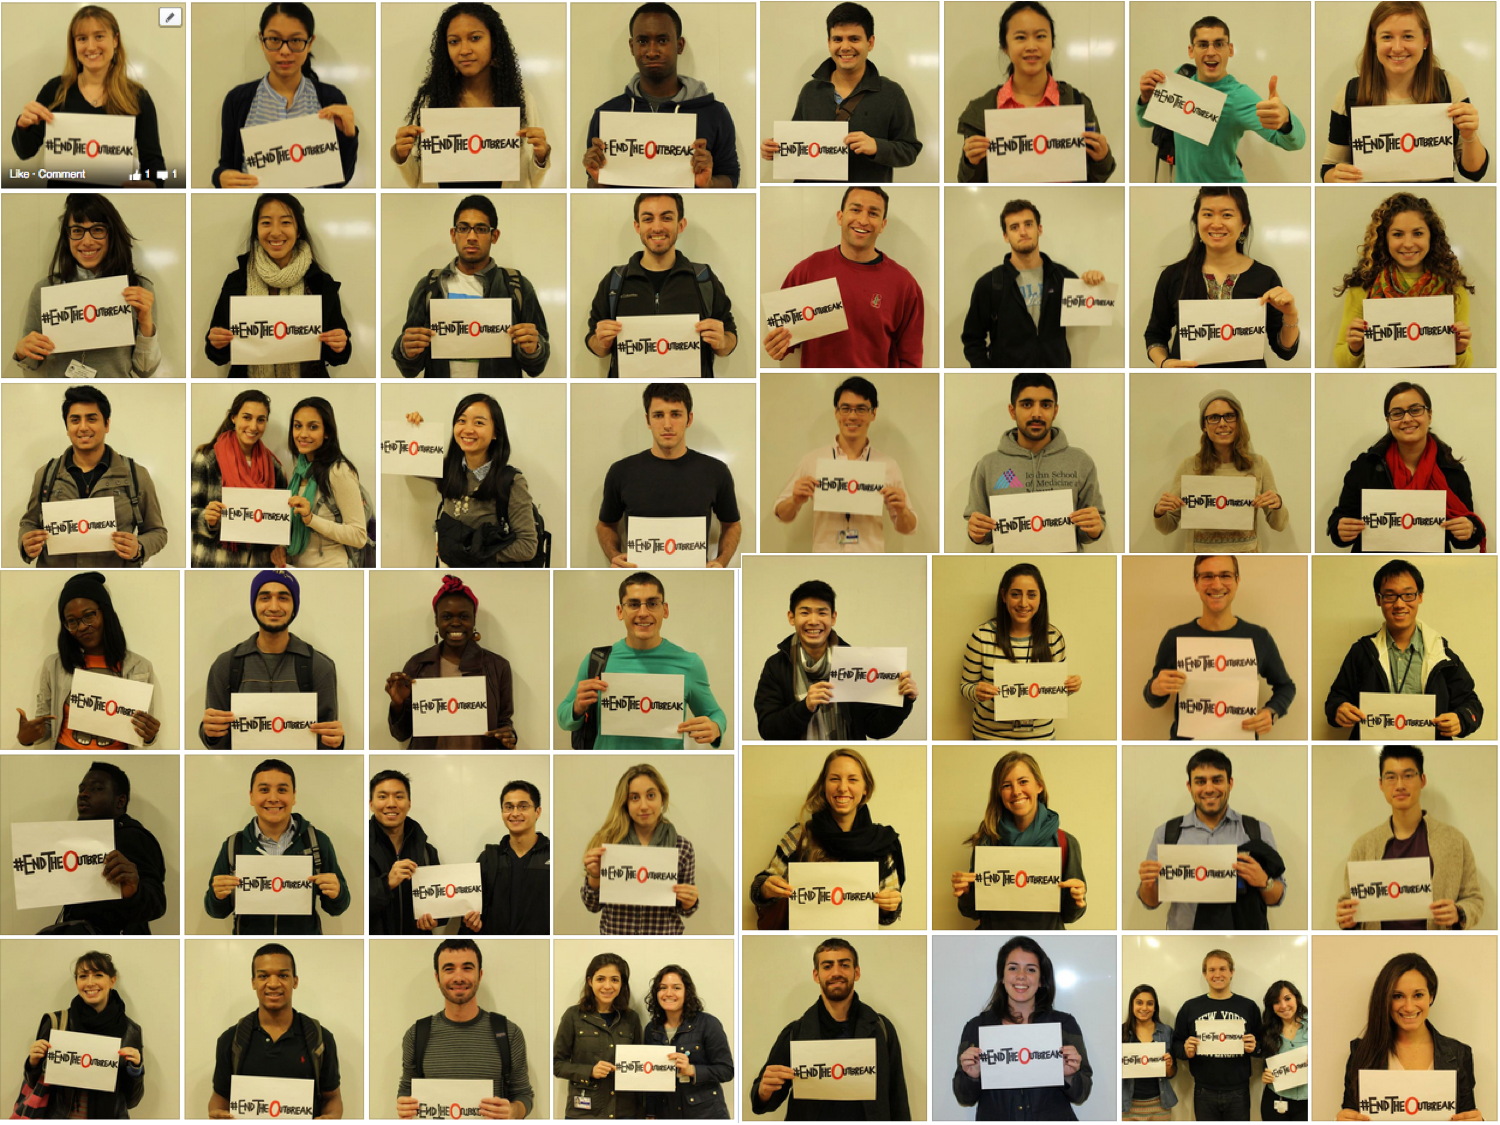 Mount Sinai student photos, supporting the #EndTheOutbreak social media campaign.